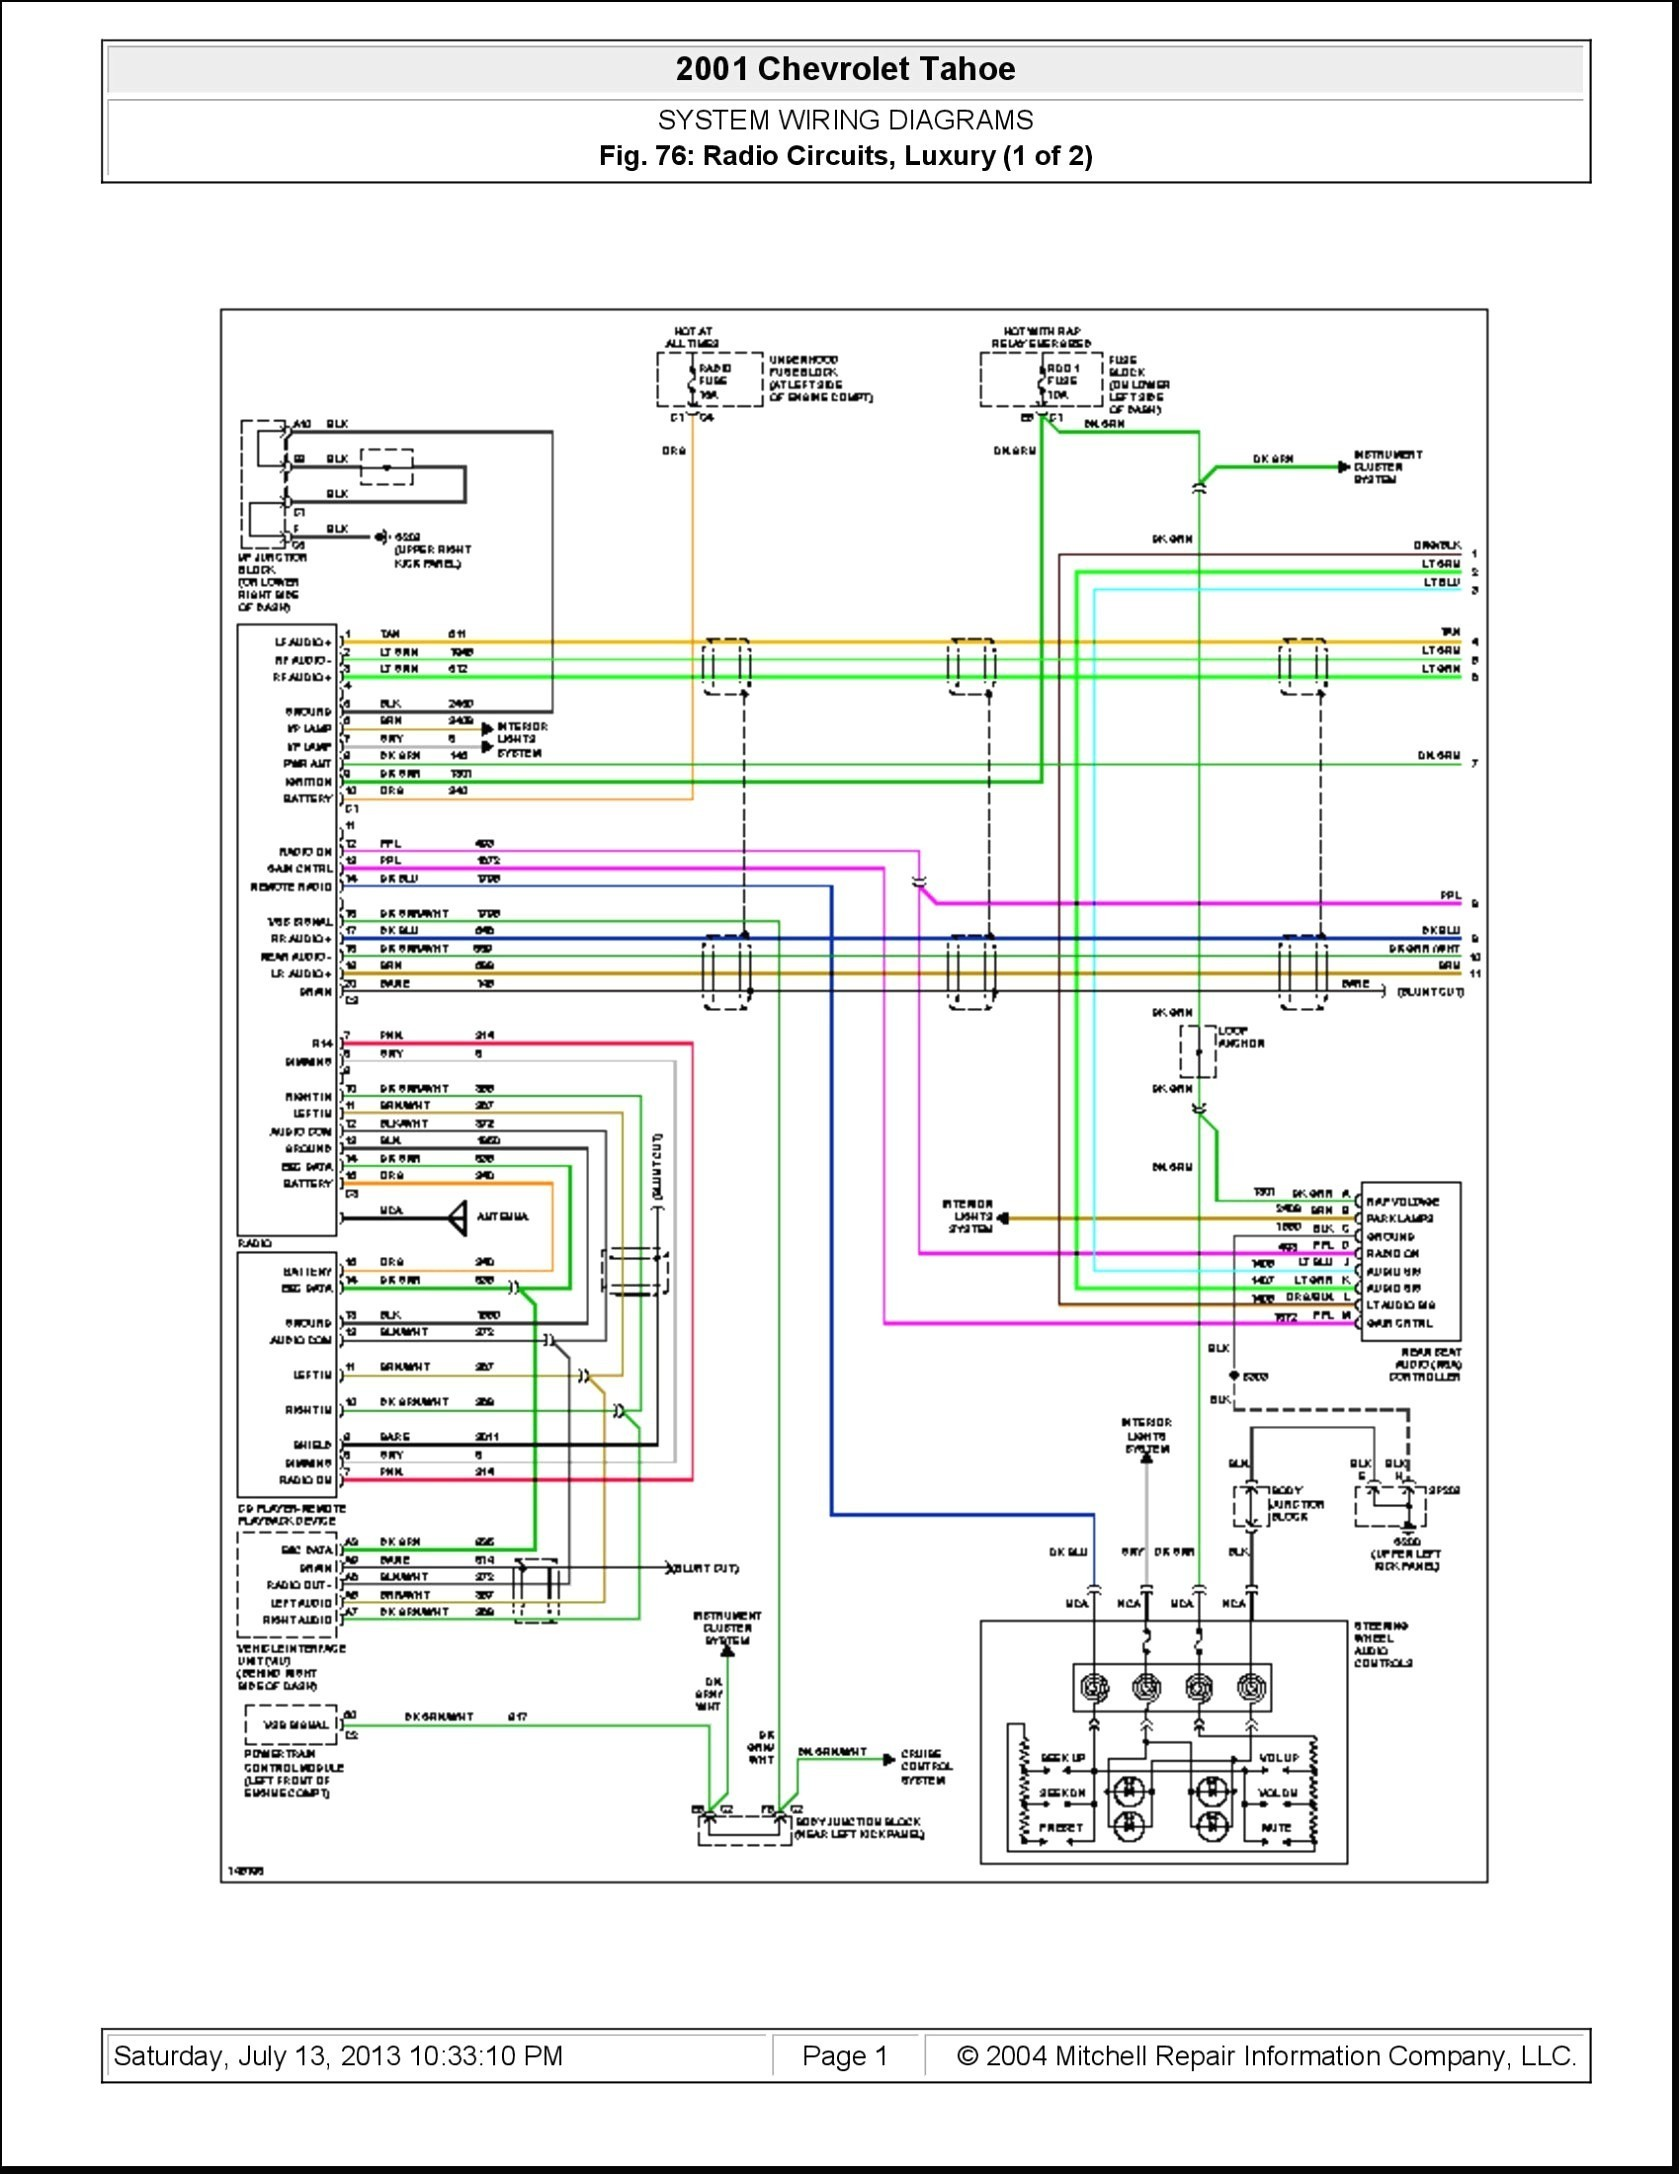 2004 Chevy Tahoe Radio Wiring Diagram 57 65 Chevy Wiring Diagrams